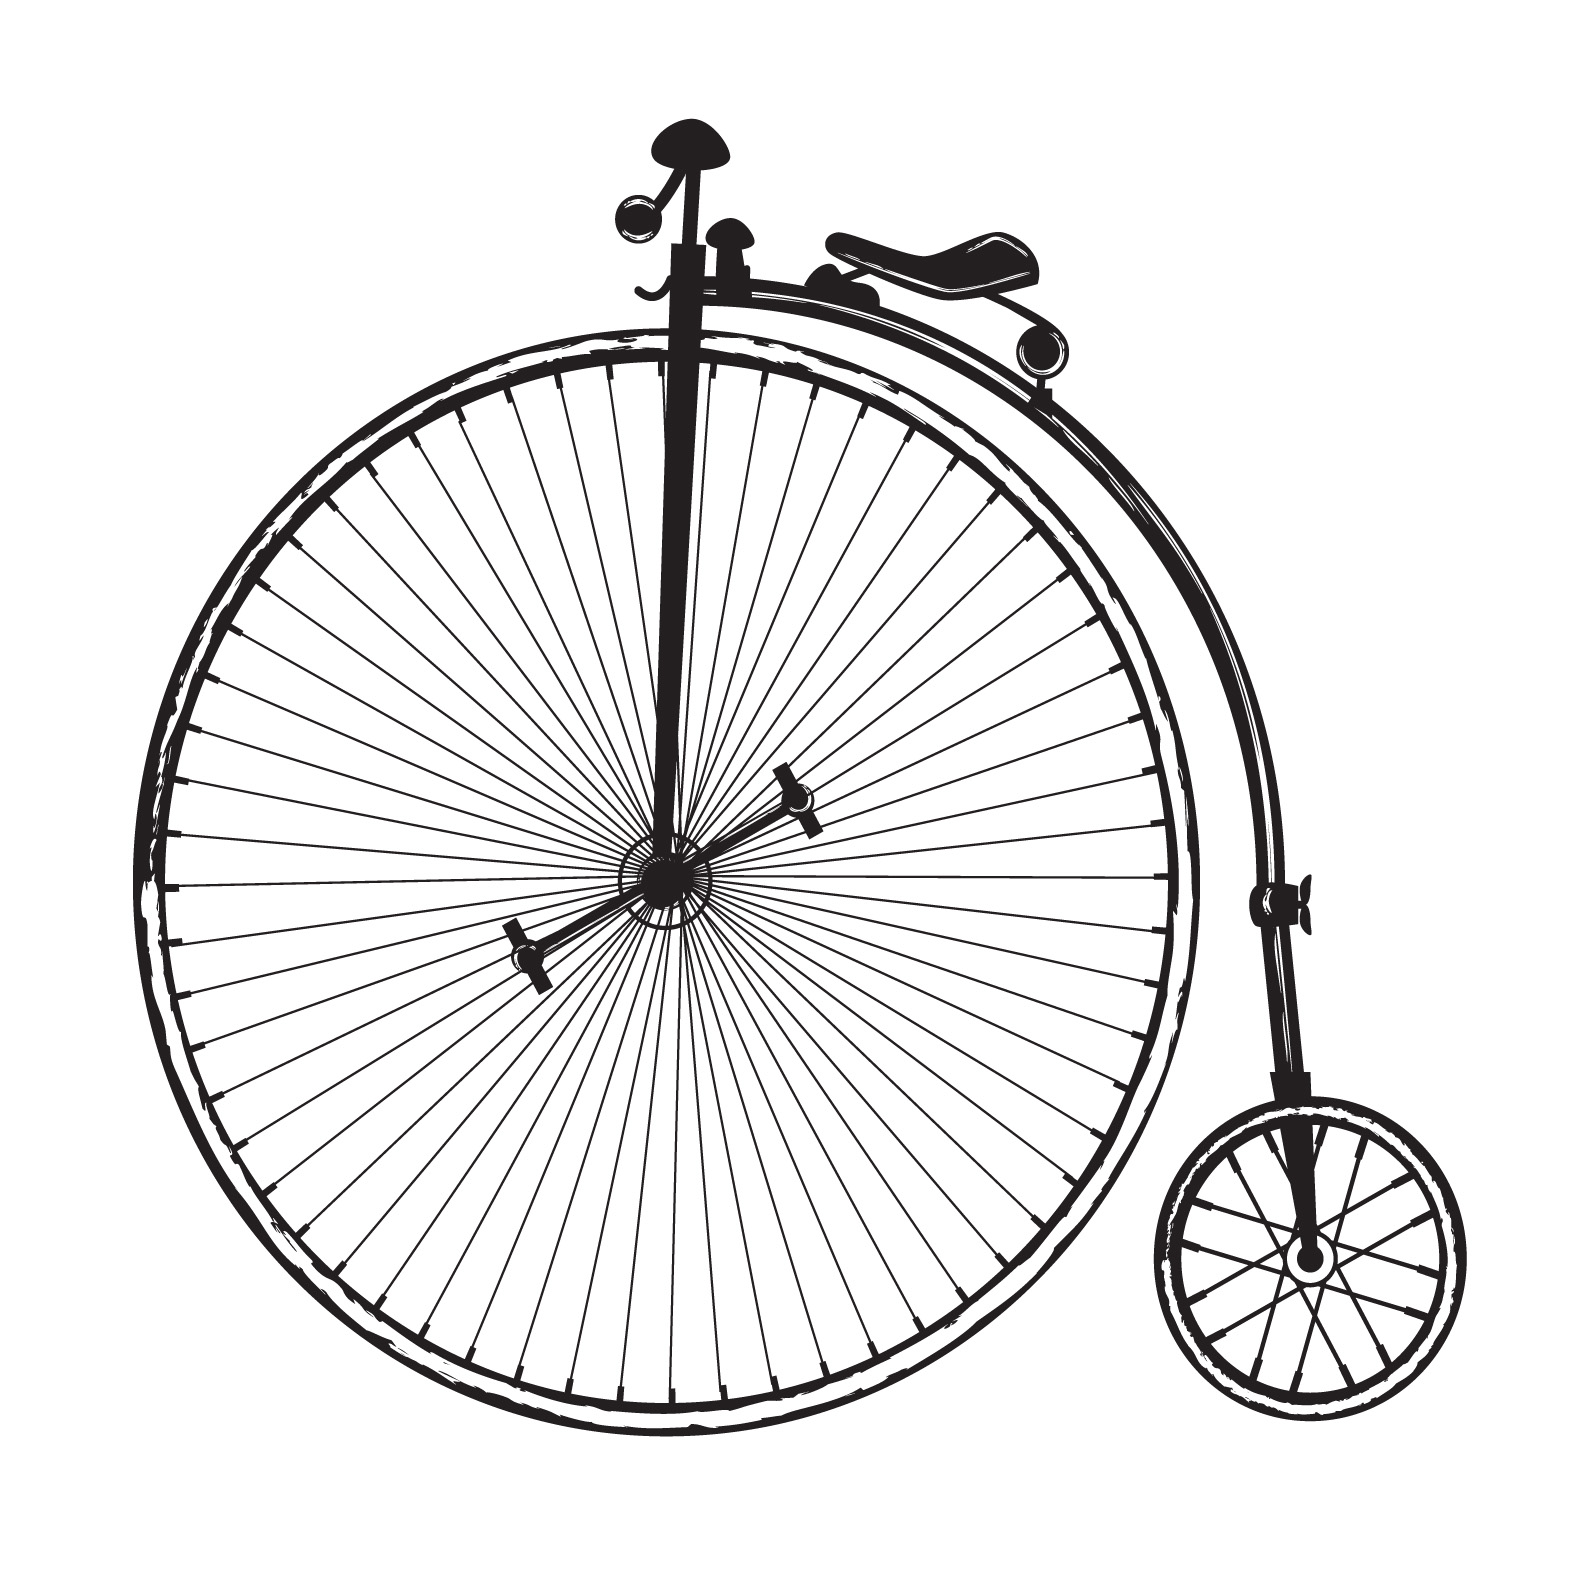 This is a photo of Astounding Bike Wheel Drawing